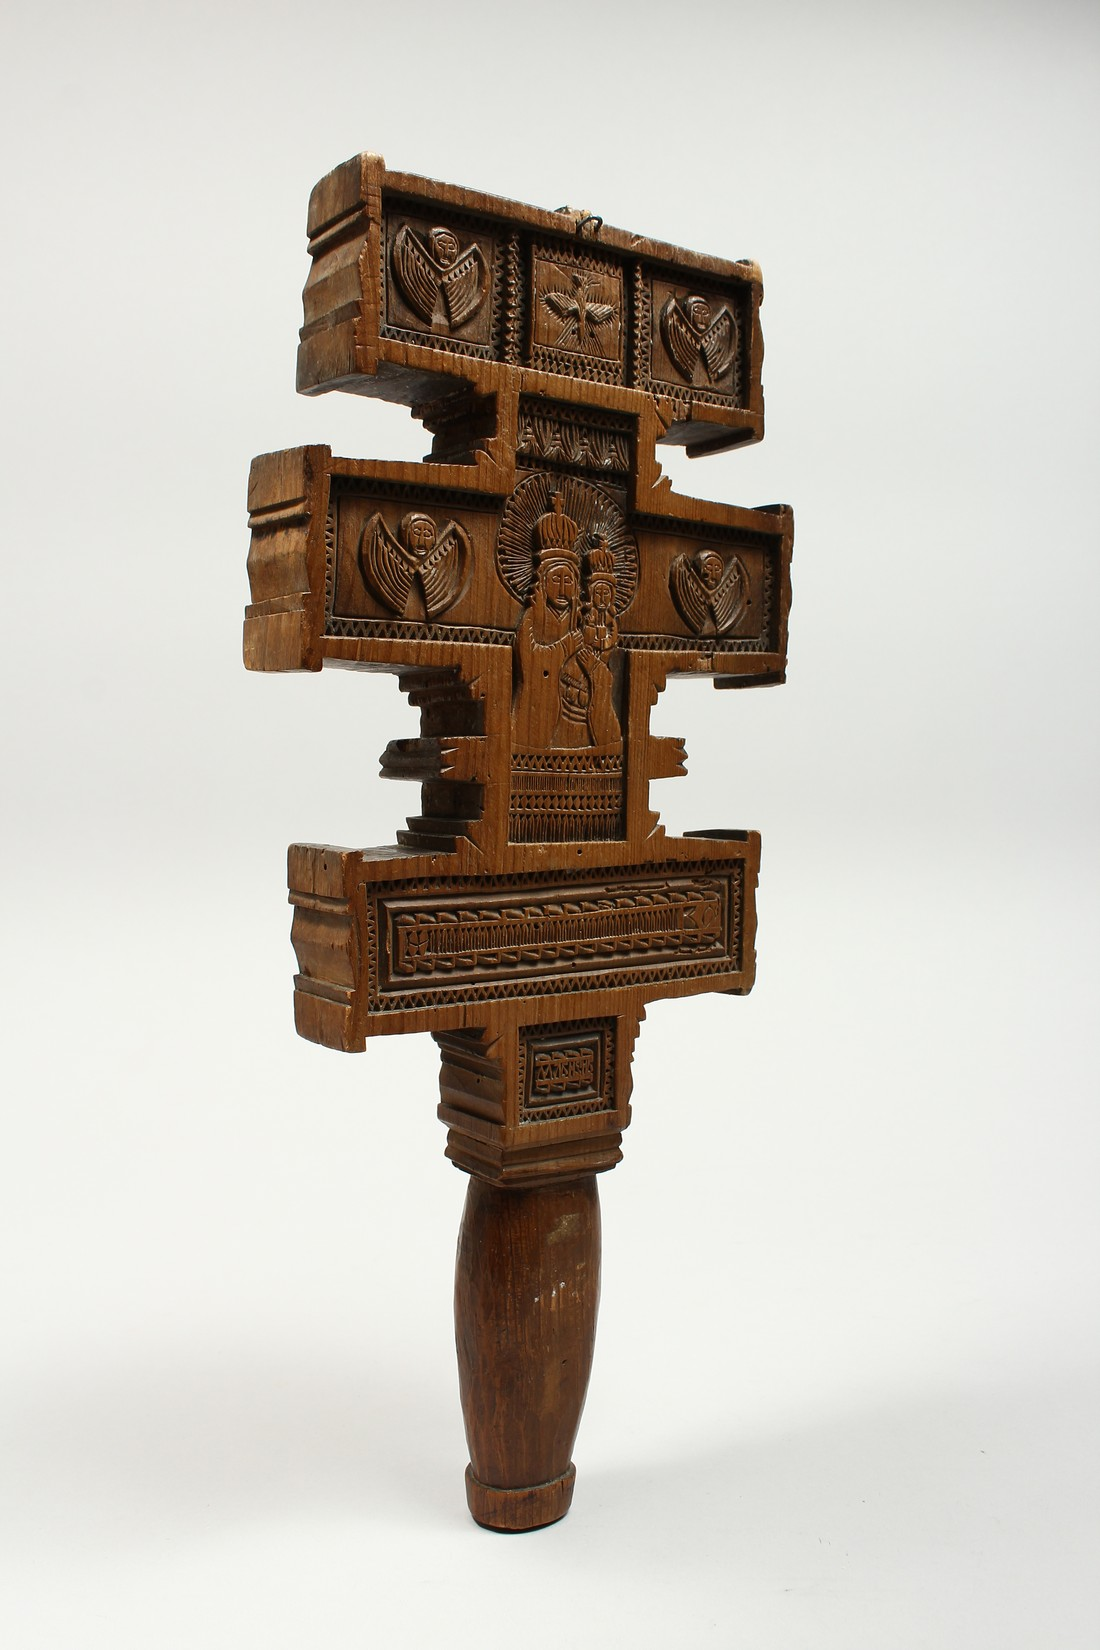 AN 18TH CENTURY GREEK CARVED WOODEN CROSS. 15ins long. - Image 5 of 11